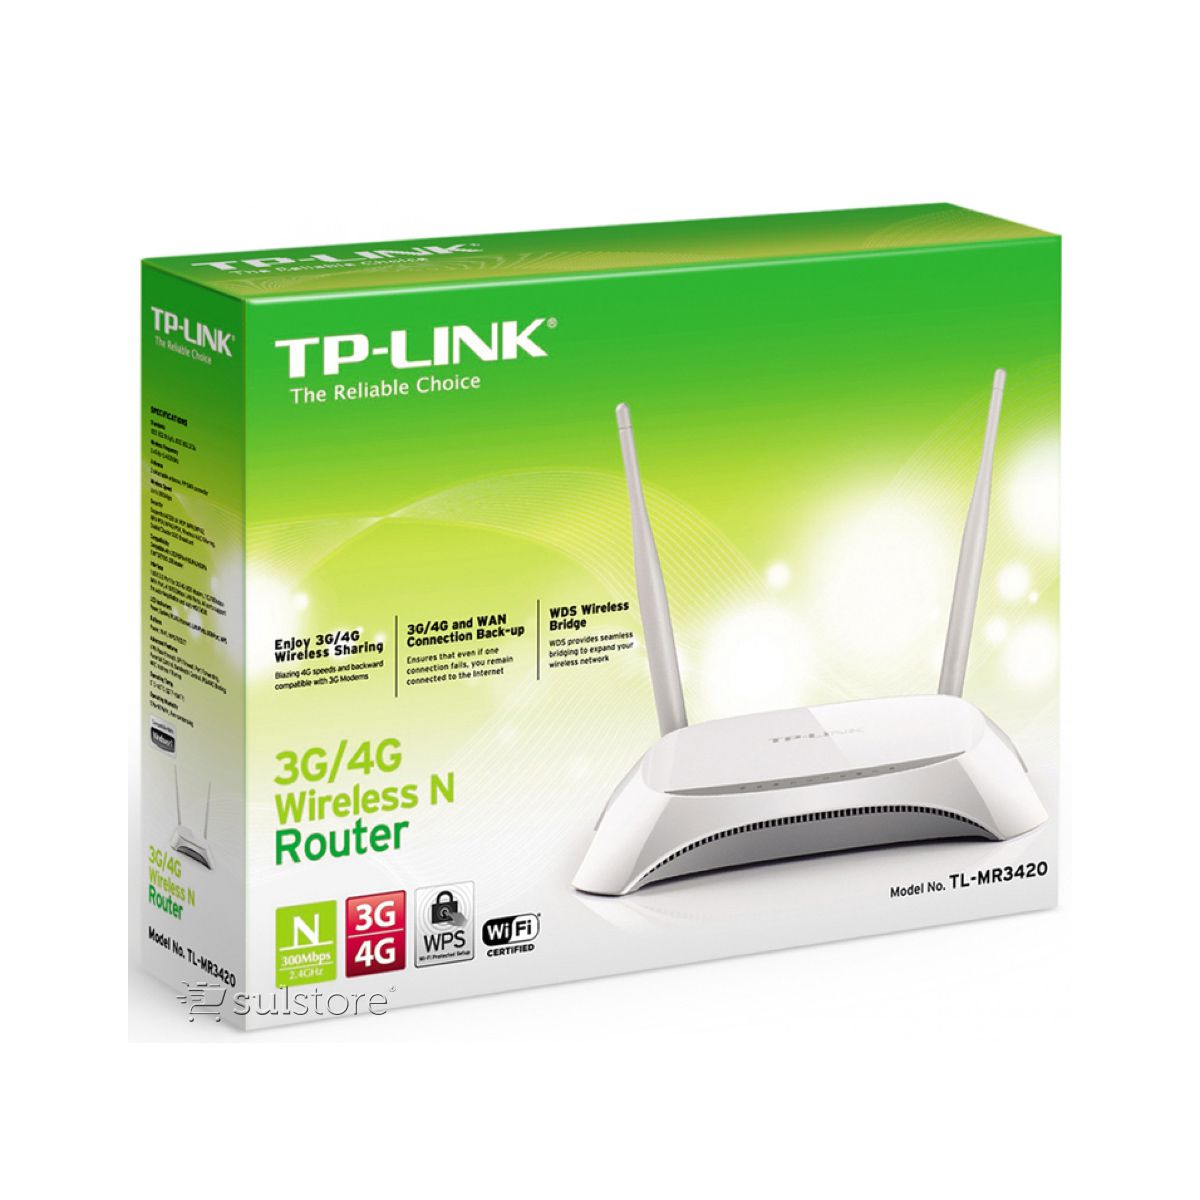 Roteador 3G 4G TP-Link Wireless 300mbps Tl-MR3420 Wireless 2 Antenas